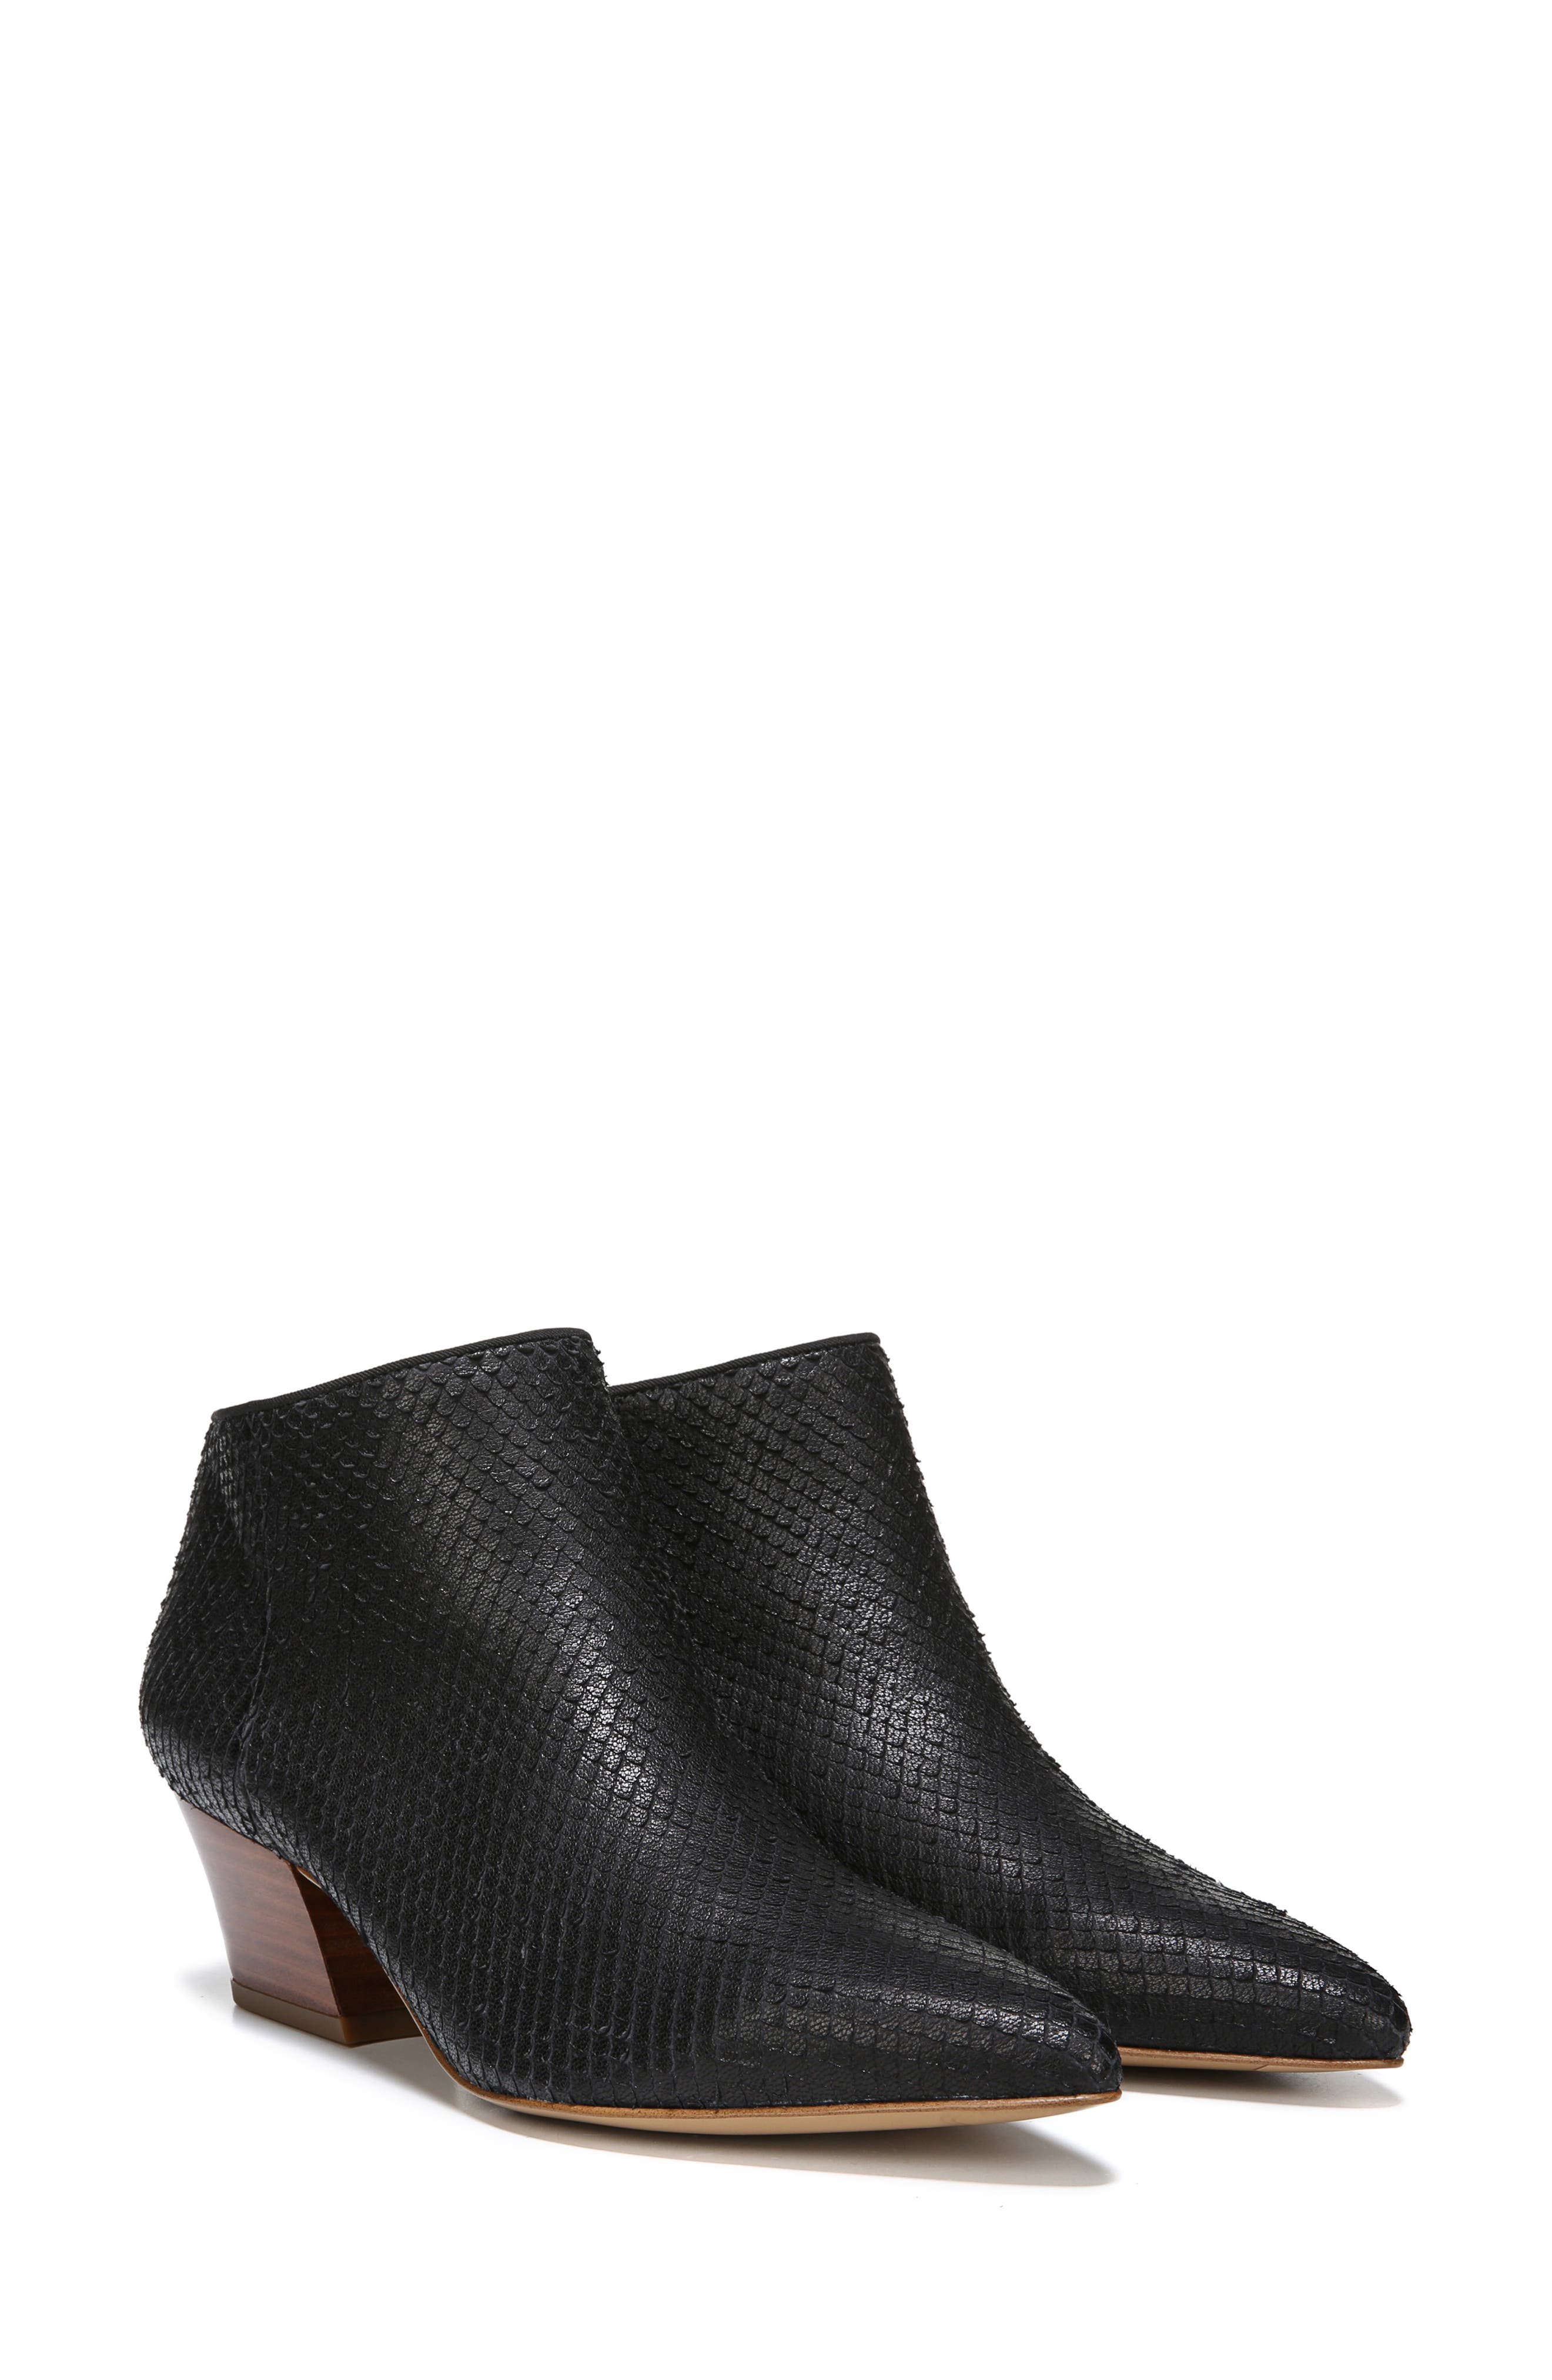 Lowe Bootie,                             Alternate thumbnail 6, color,                             BLACK SNAKE PRINT LEATHER